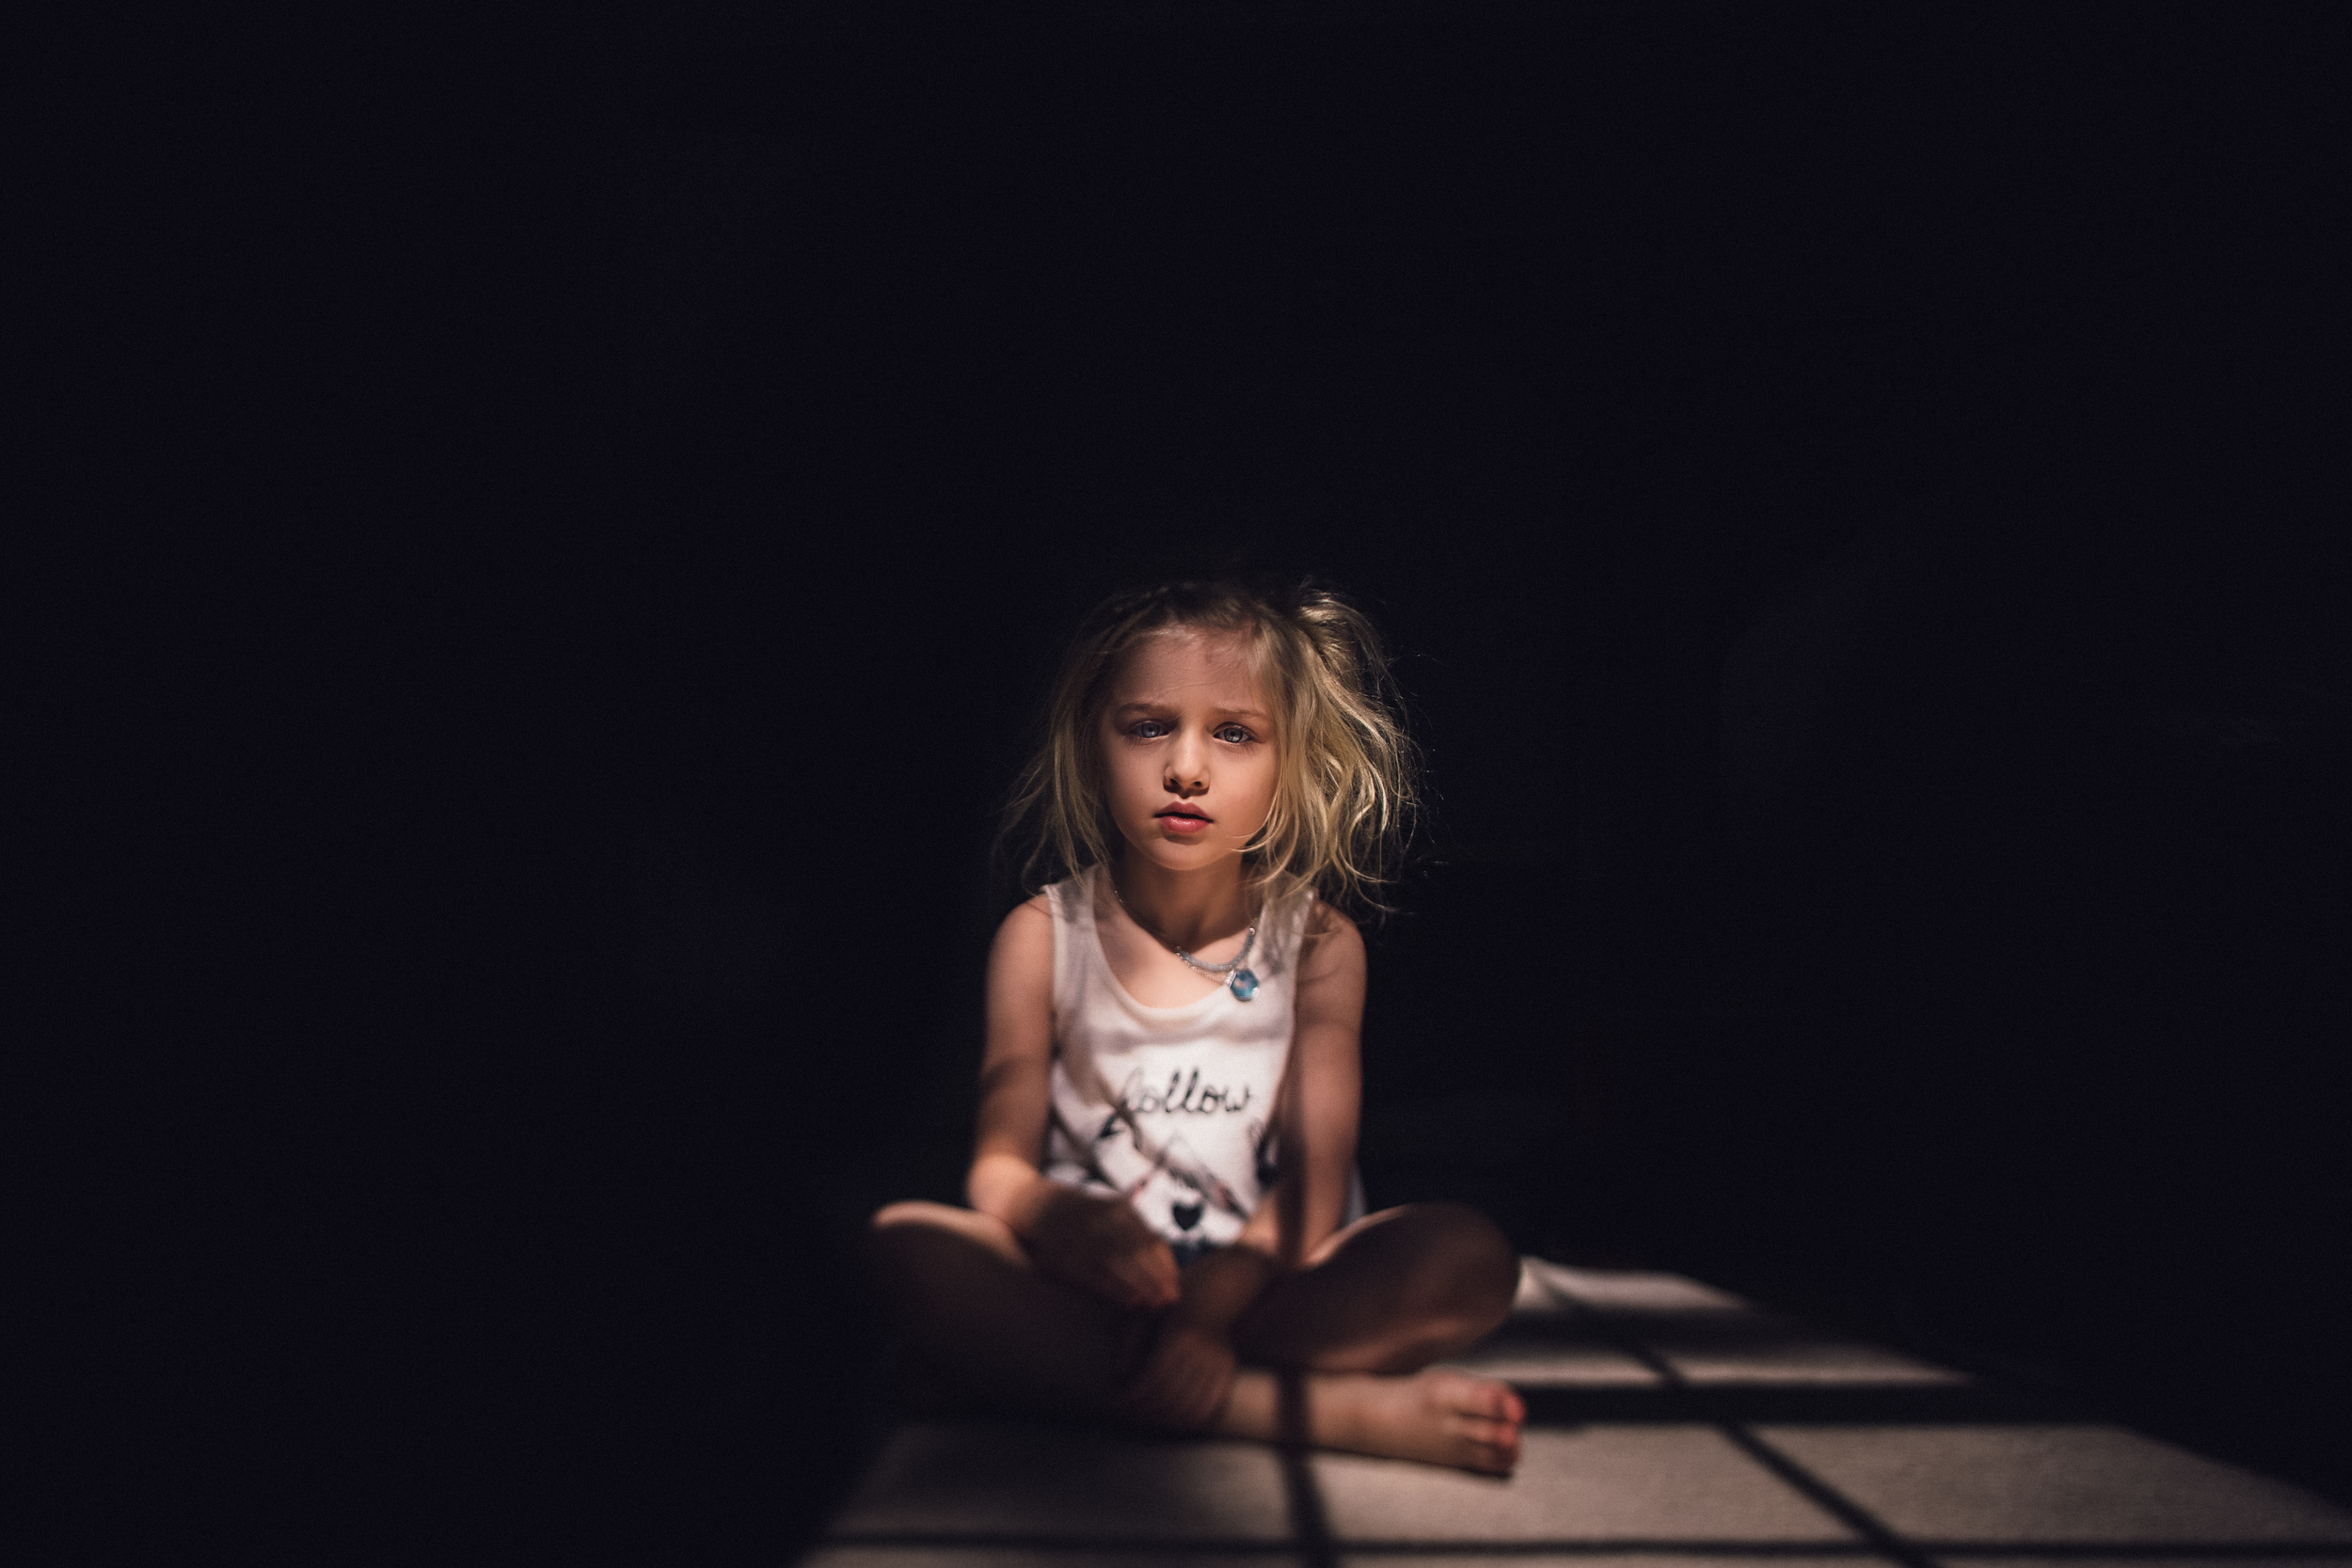 hello-olivia-photography-long-island-family-child-kids-lifestyle-portrait-photographer-pocket-light-tilt-shift-blonde.jpg